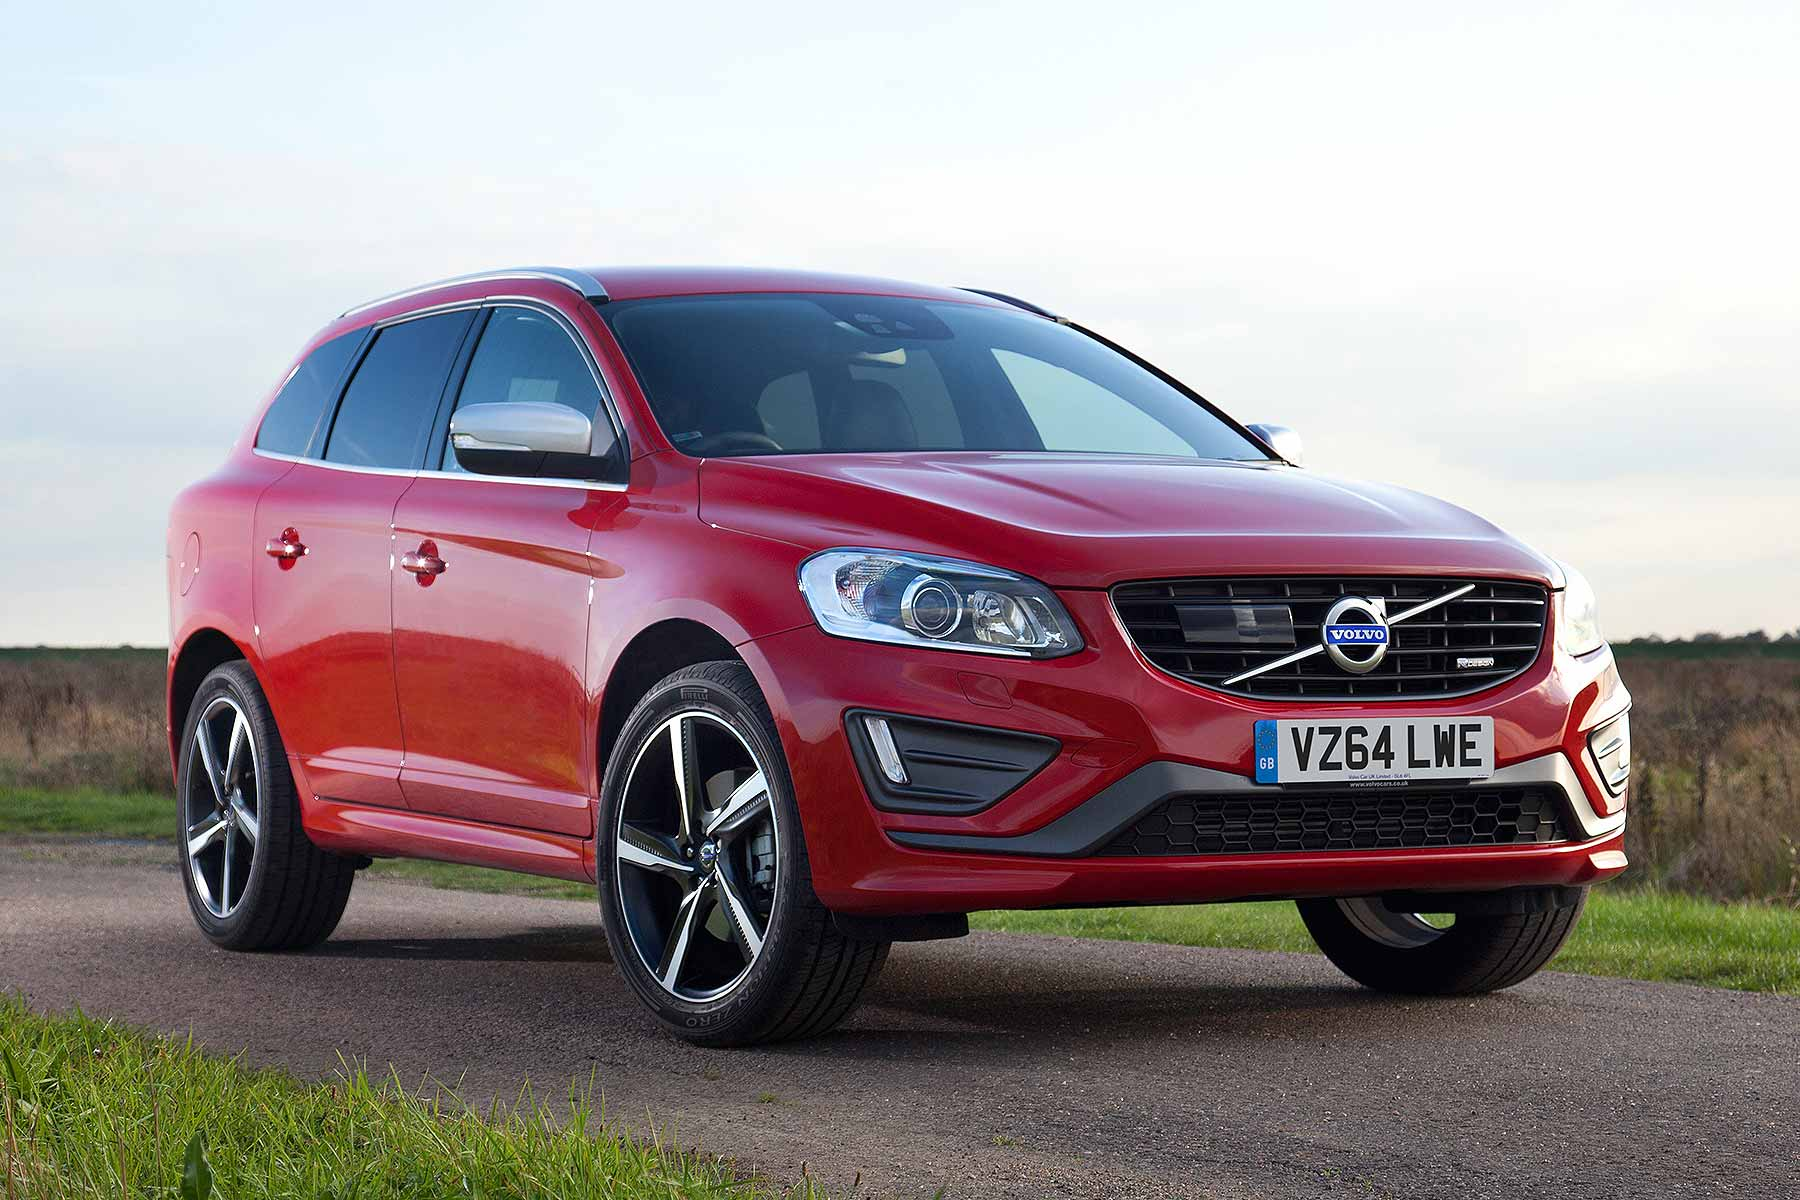 New Bmw X1 Uk besides Volvo XC60 together with Blog vehiclejar further 2016 Volkswagen Polo Suv Review And Motor New Car Specs as well 2015 Volvo Xc60 Release Date. on 2015 volvo suv xc60 prices